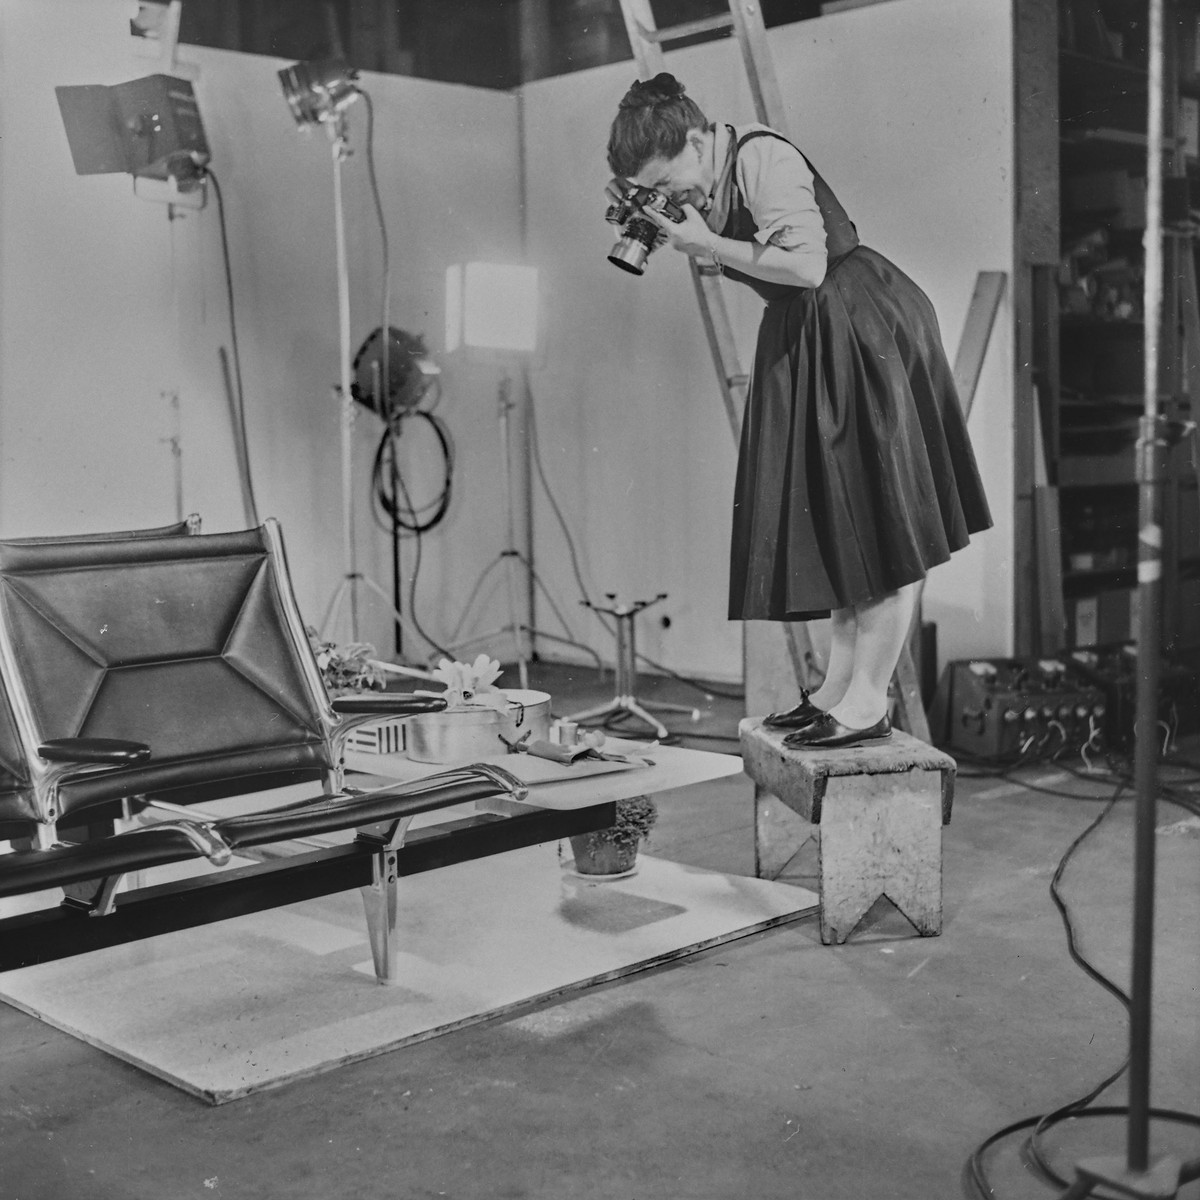 Ray Eames photographing the »Tandem Seating« at the Eames Studio, 23 October 1962, Eames Collection Vitra Design Museum © Eames Office LLC